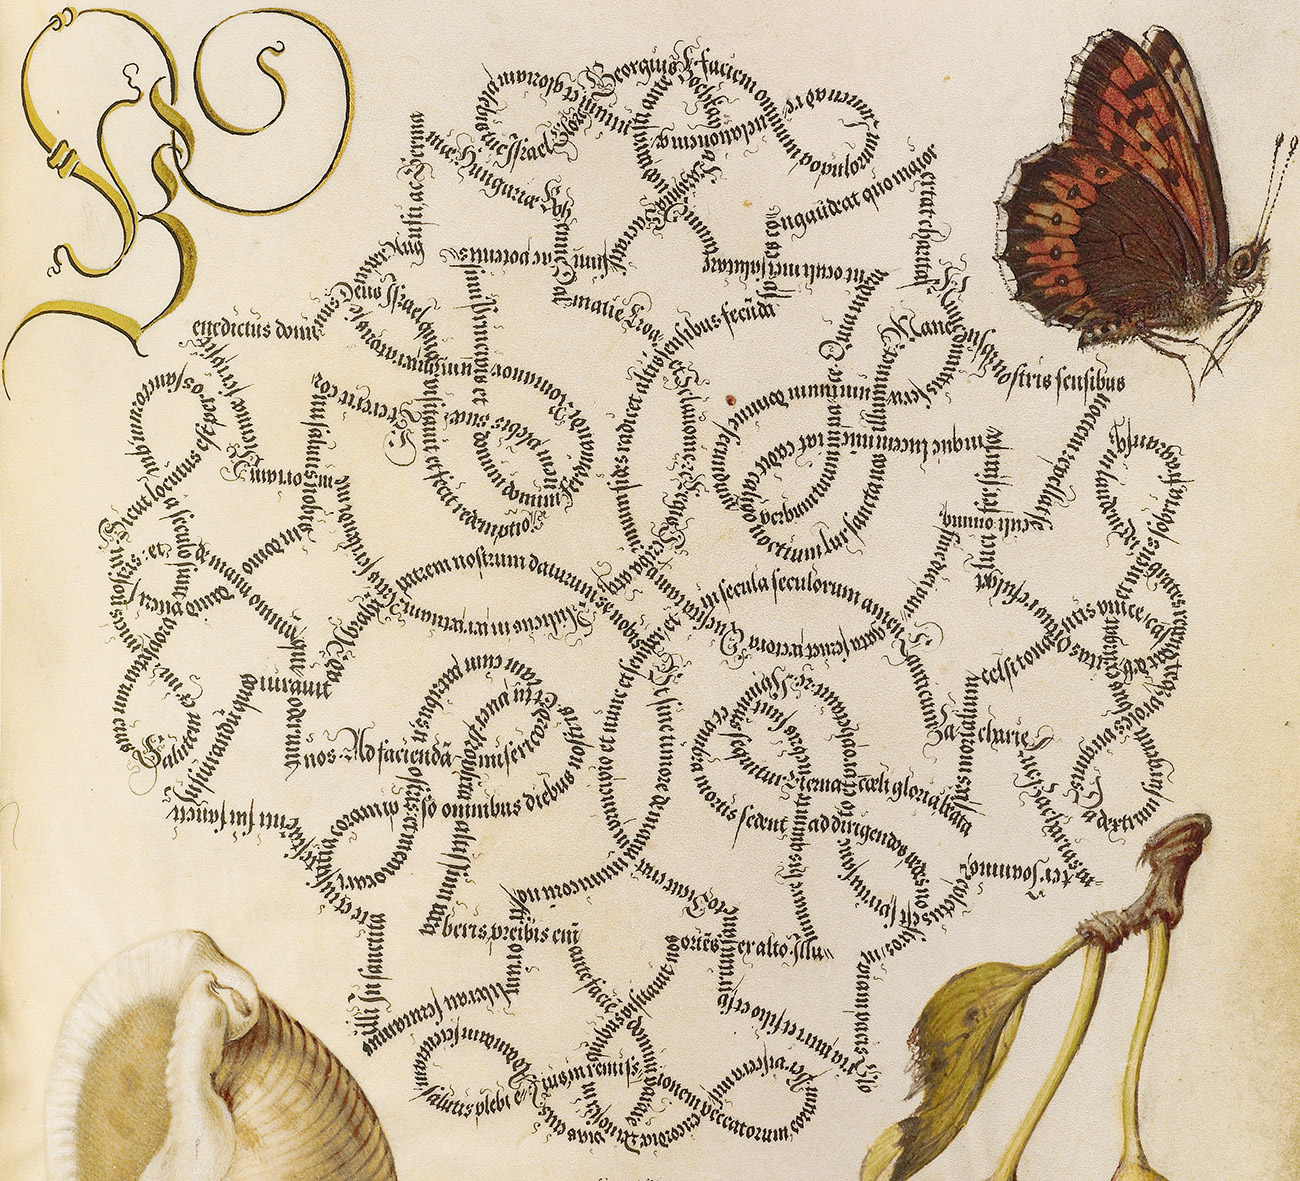 Detail of a manuscript page with a criss-crossing maze of elaborate calligraphy in Latin